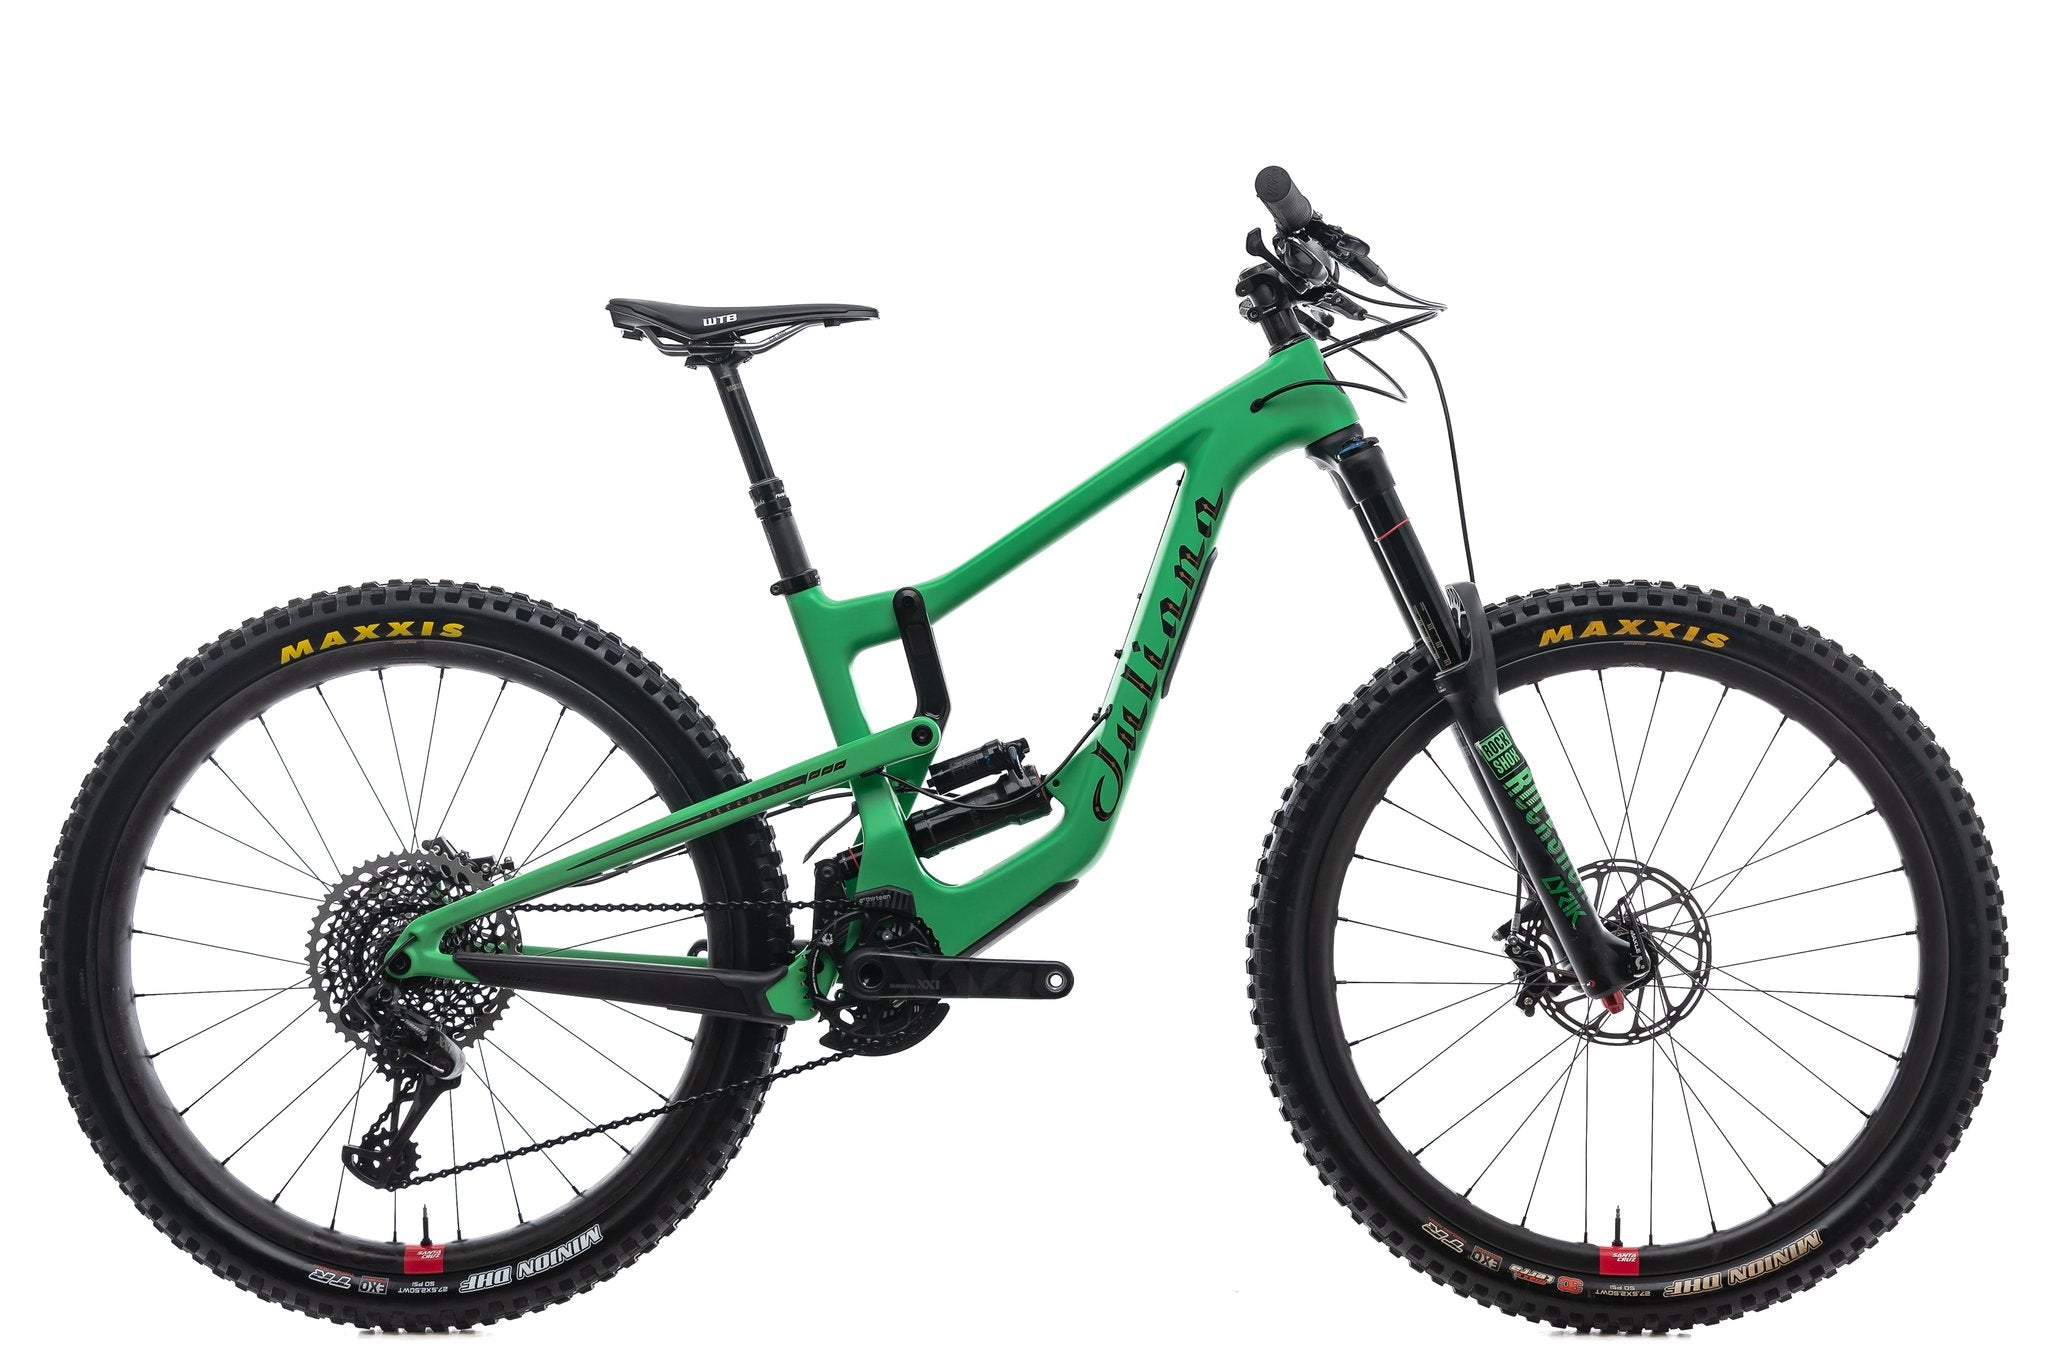 Juliana produces a range of women's specific mountain bikes including the long-travel Strega.